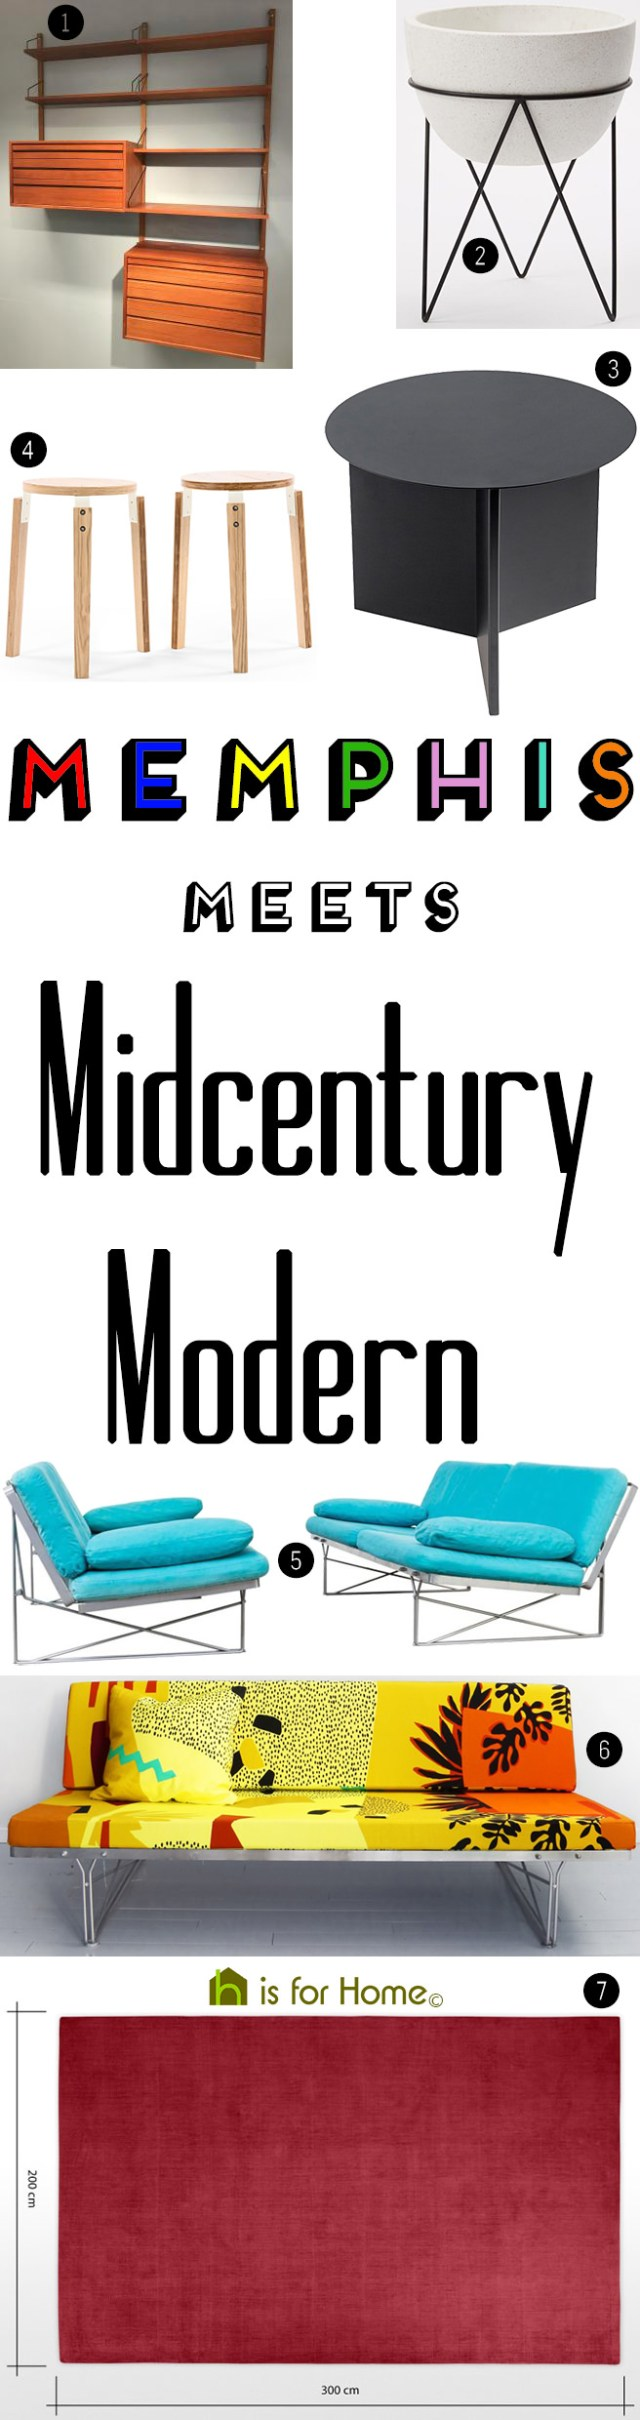 Get their look: Memphis meets Midcentury Modern | H is for Home